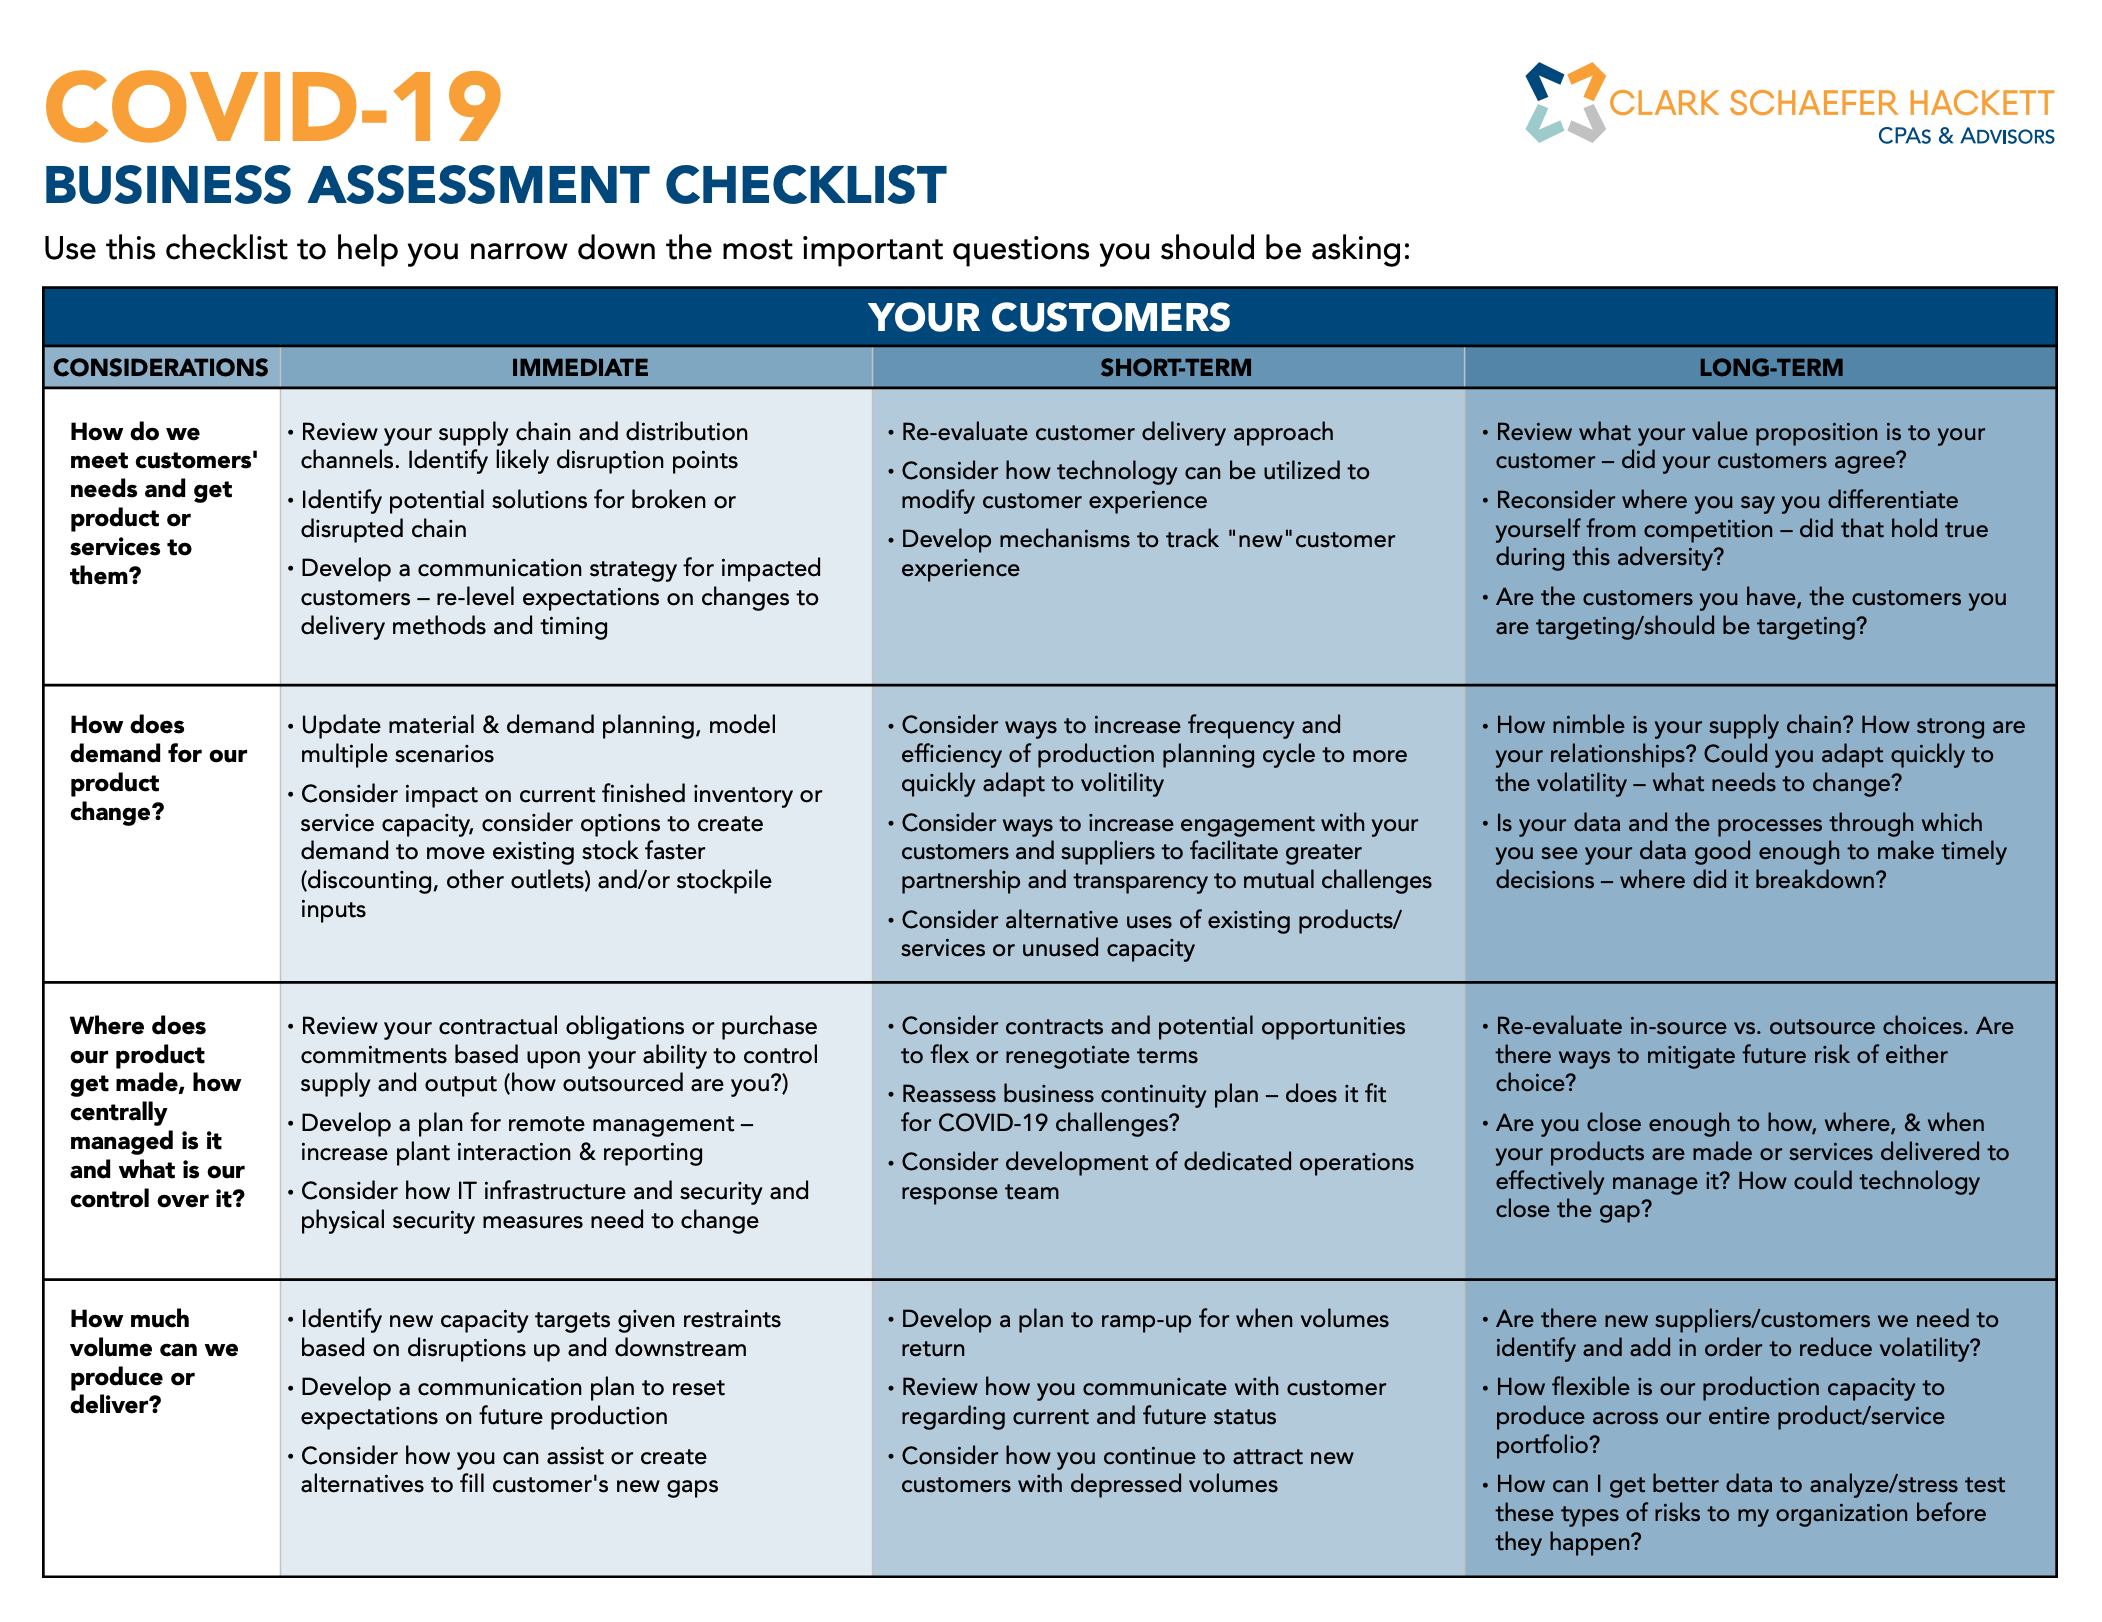 Covid-19 Business Assessment 2